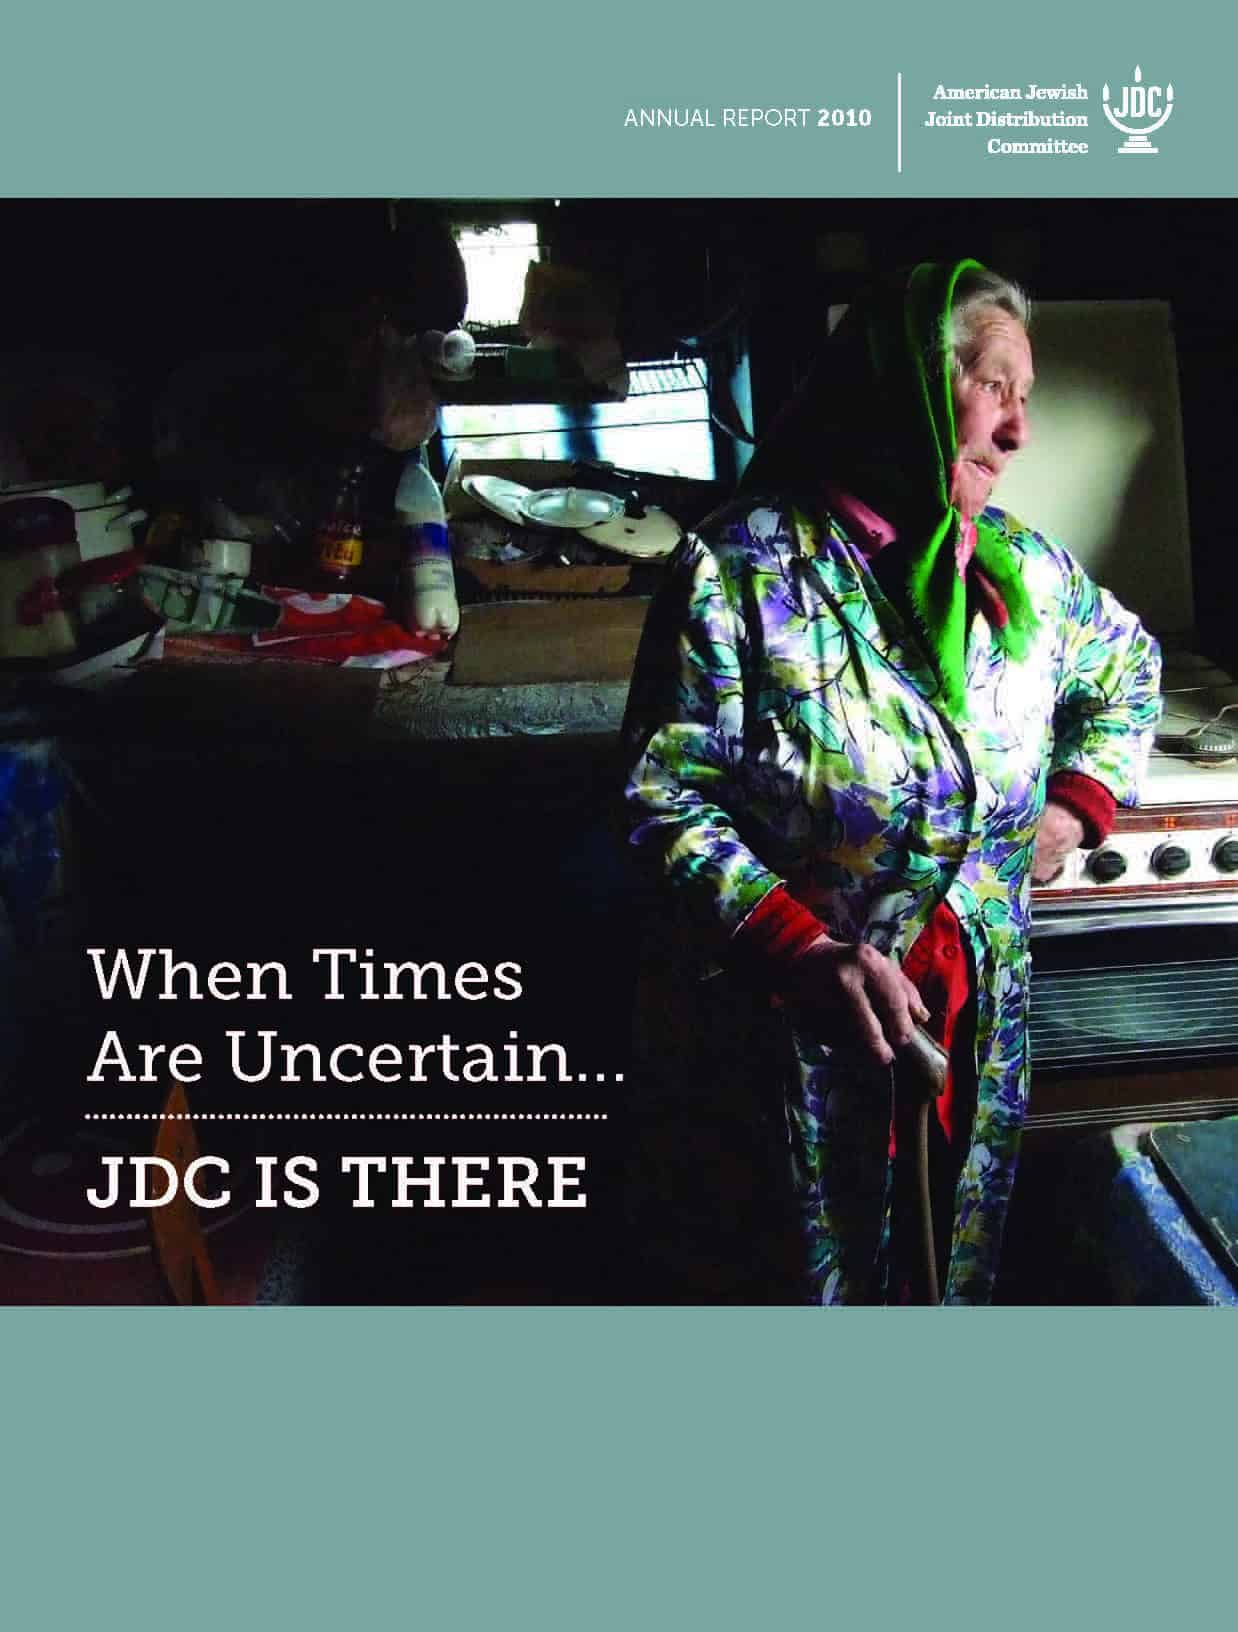 JDC's Annual Report 2011 showing an elderly JDC client in the former Soviet Union standing in her kitchen.